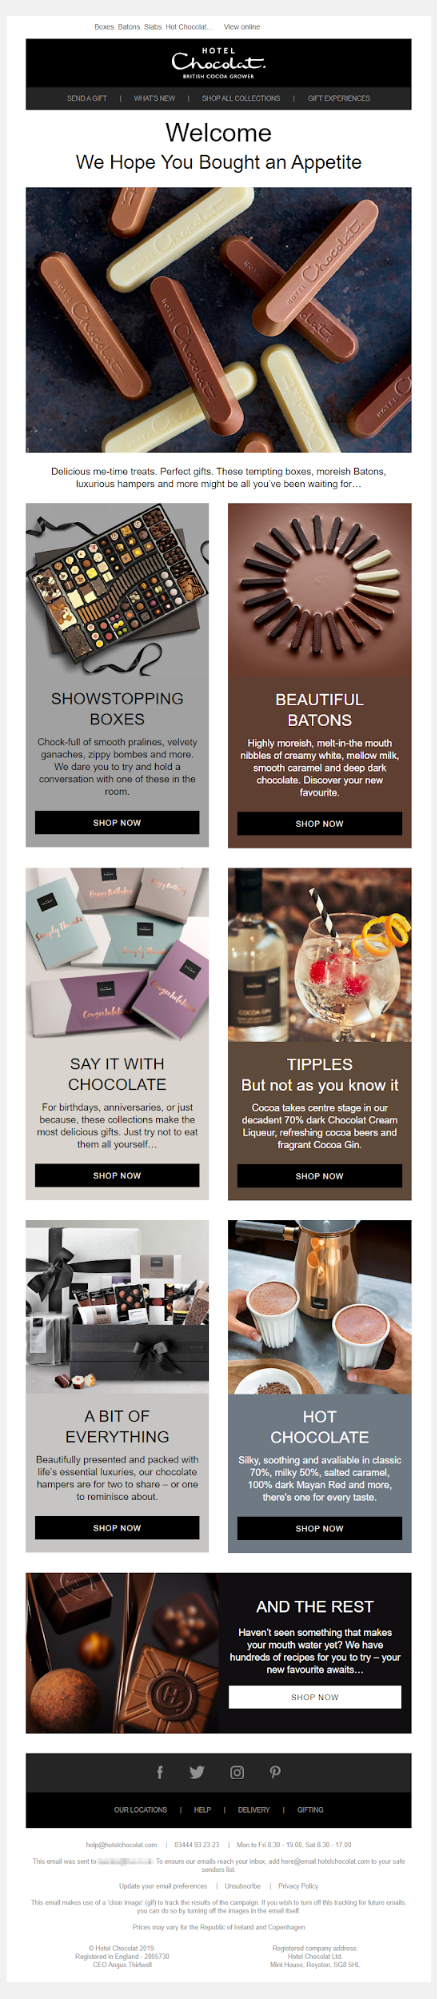 An email sent by Hotel Chocolat as part of a segmentation experiment to drive more website revenue